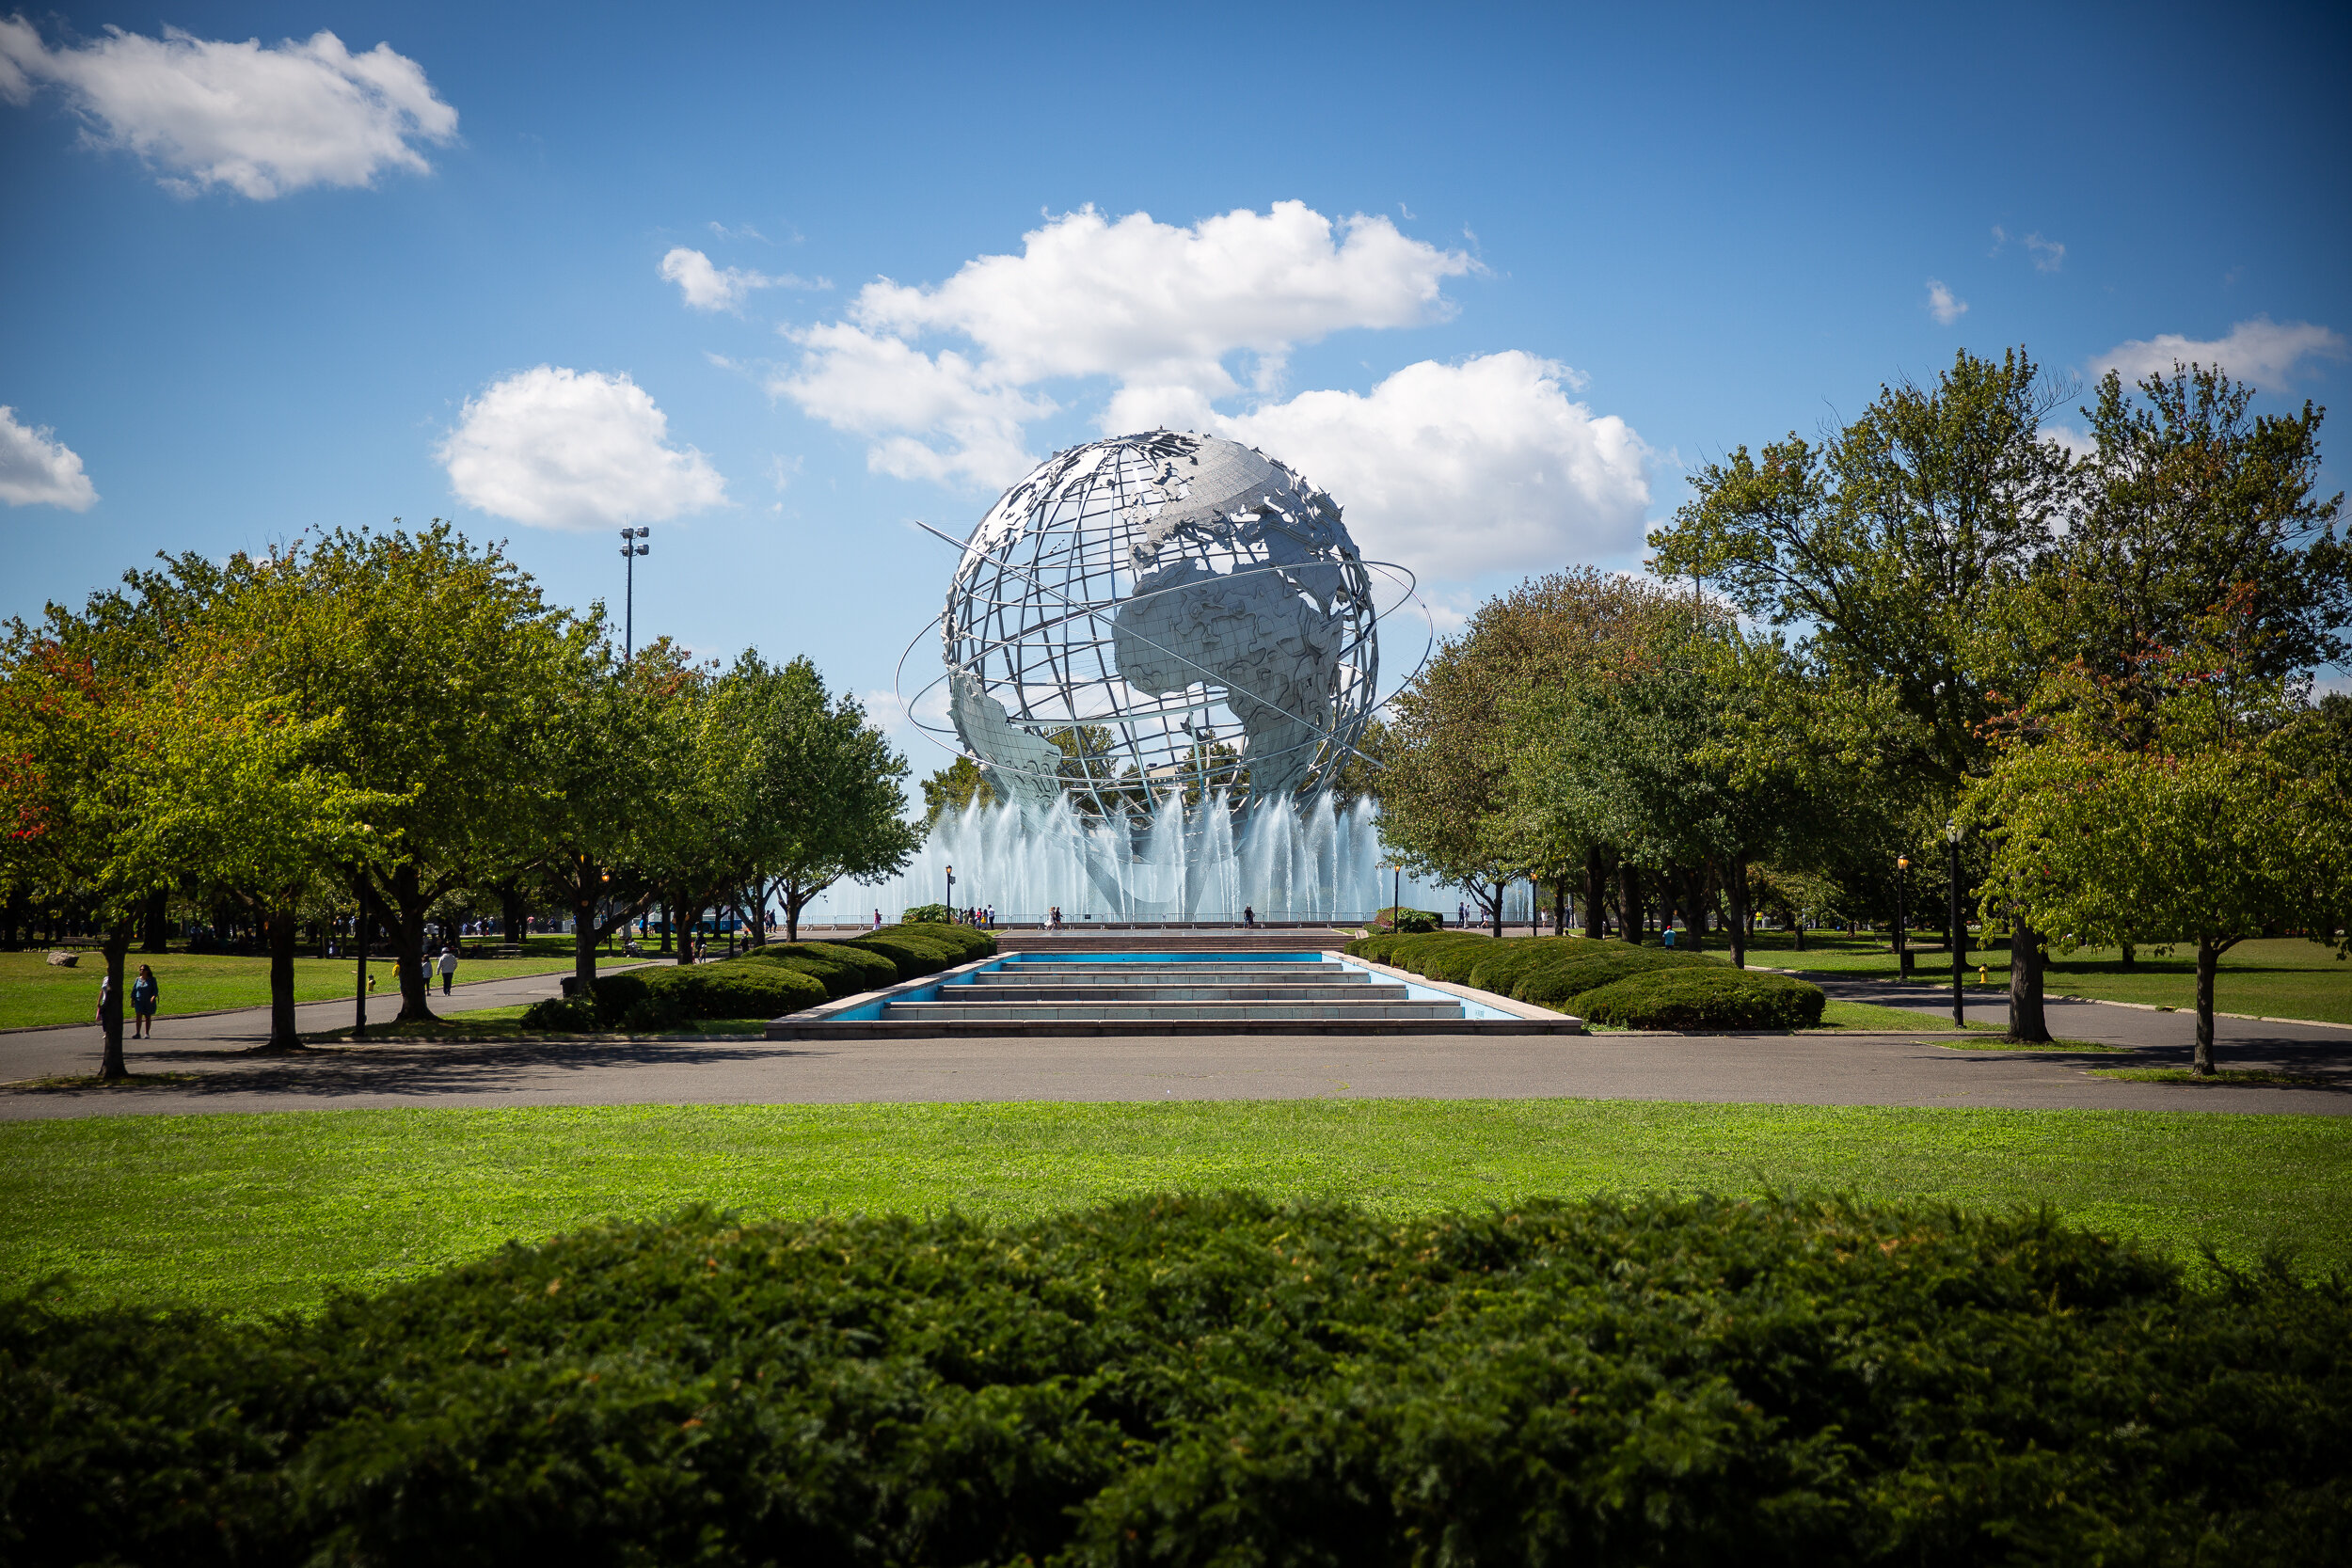 The Unisphere at Flushing Meadows-Corona Park in Queens